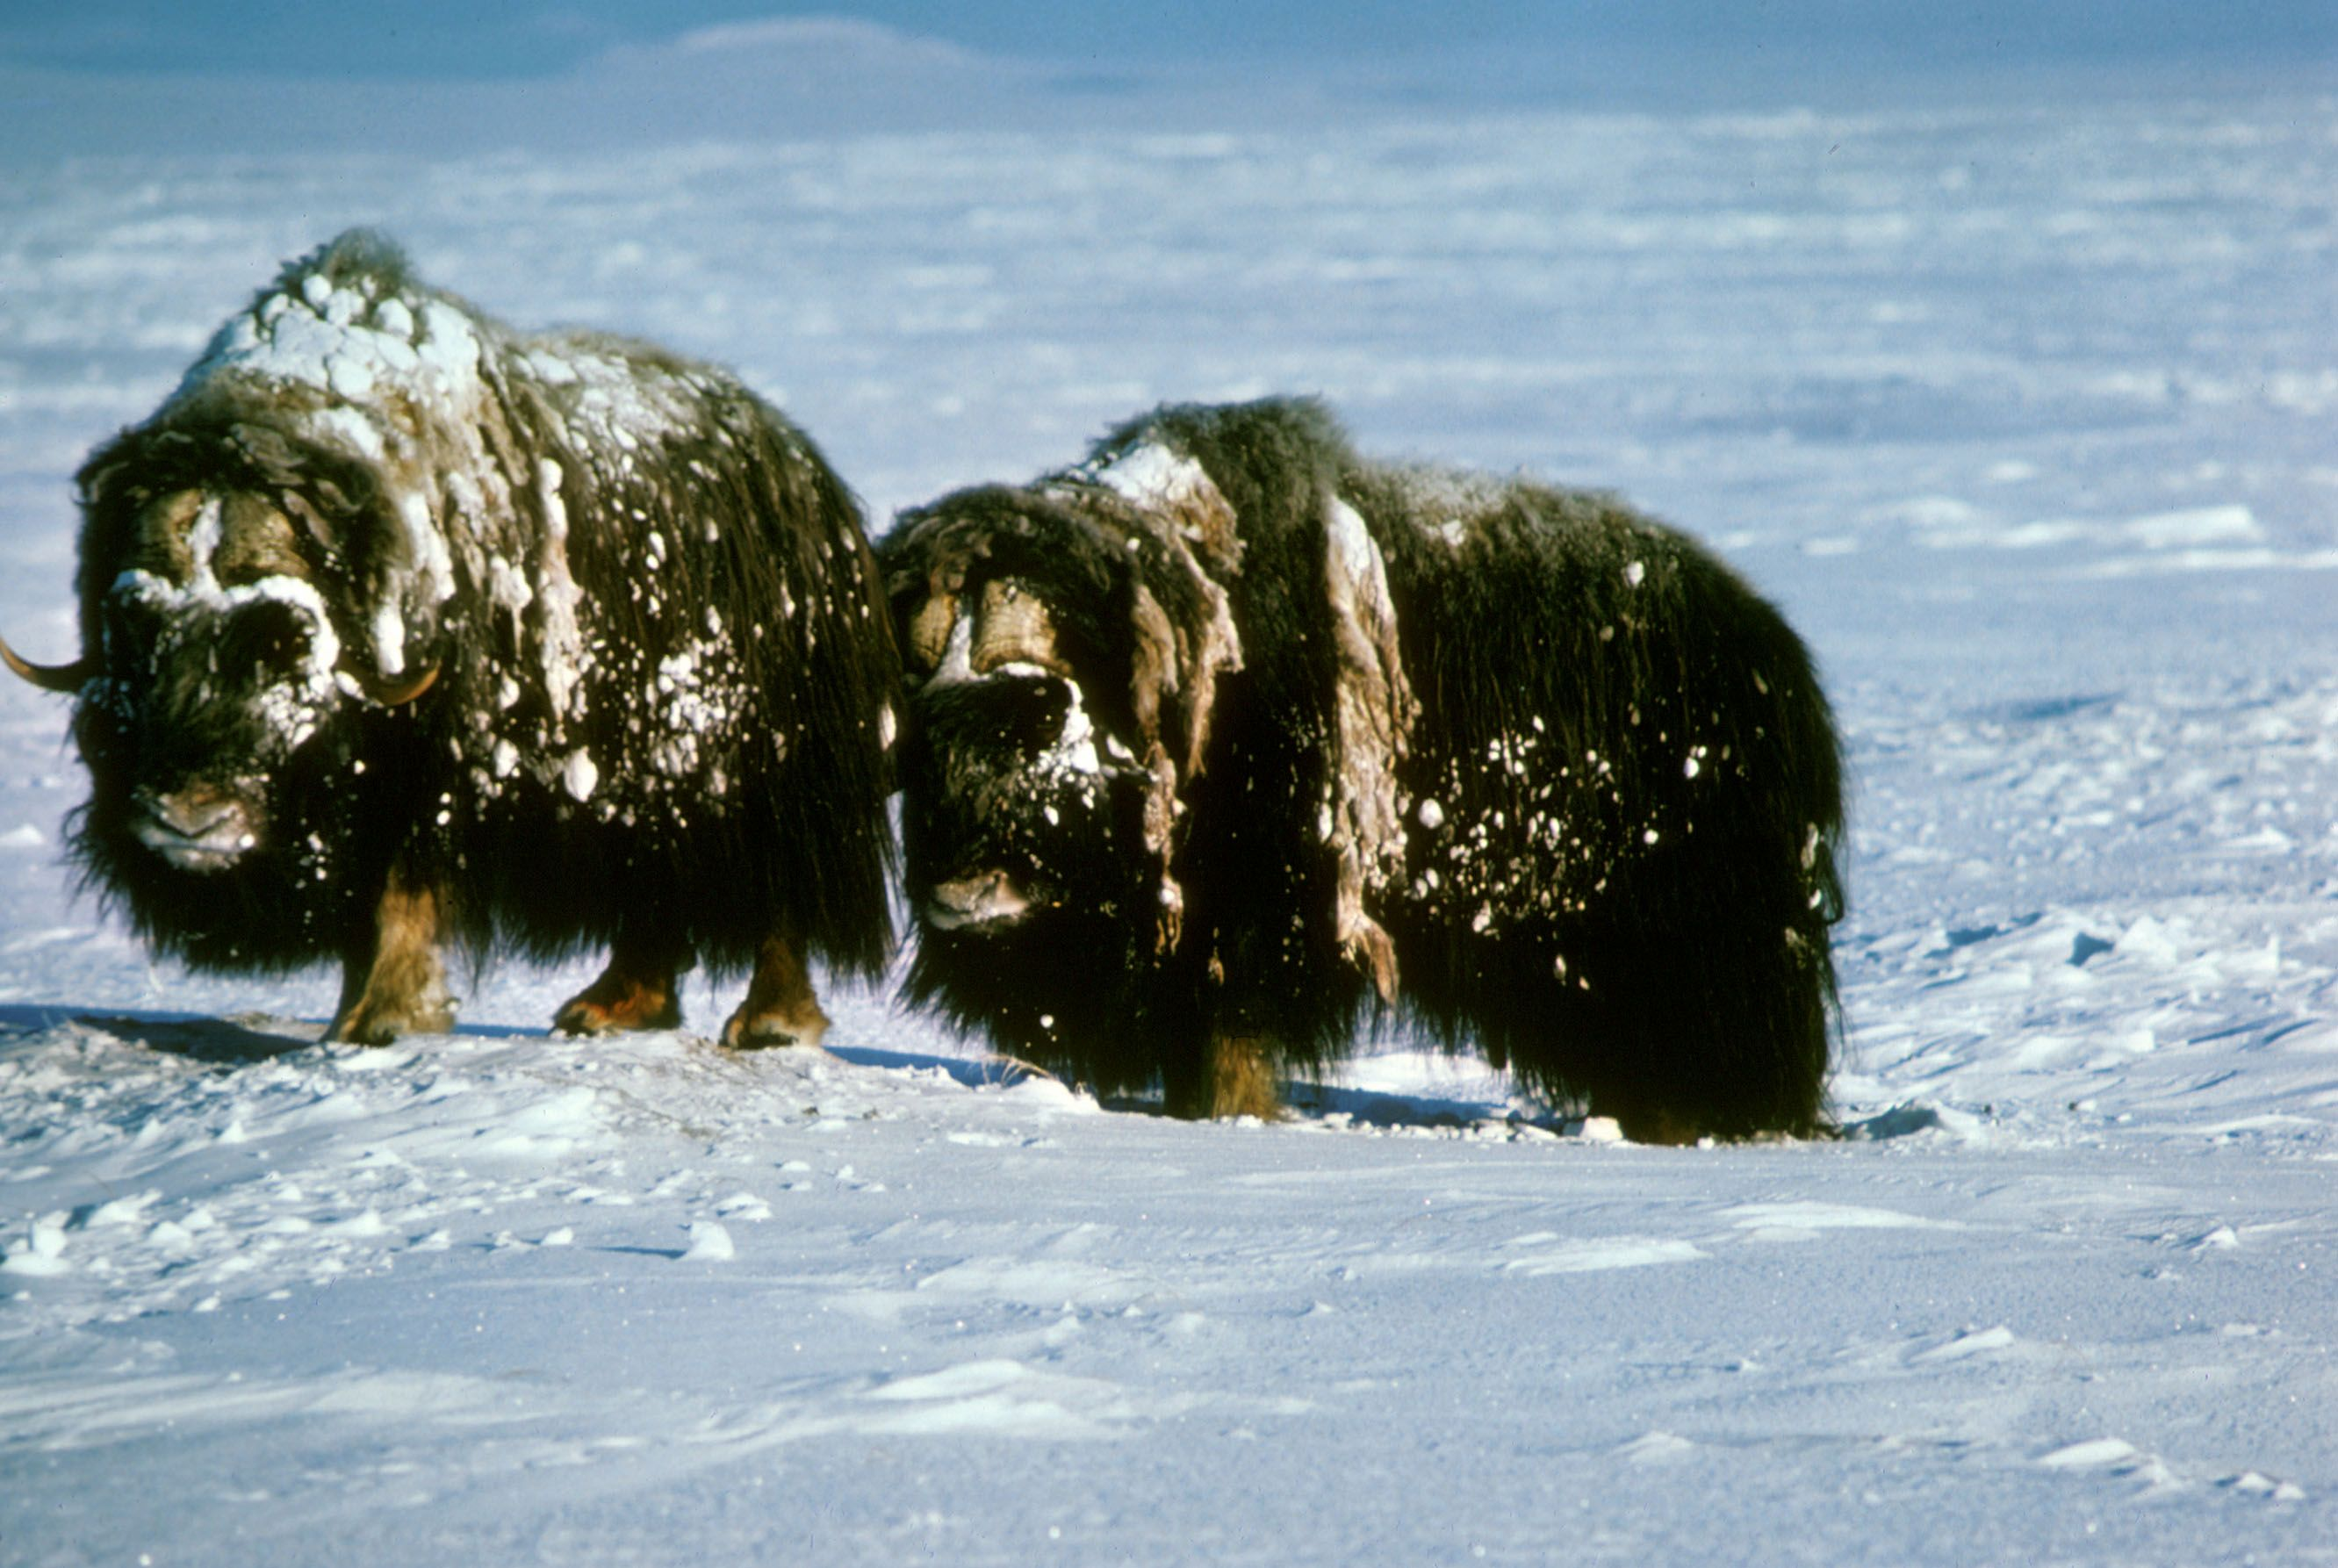 pictures of the arctic tundra Arctic Tundra Musk Oxen